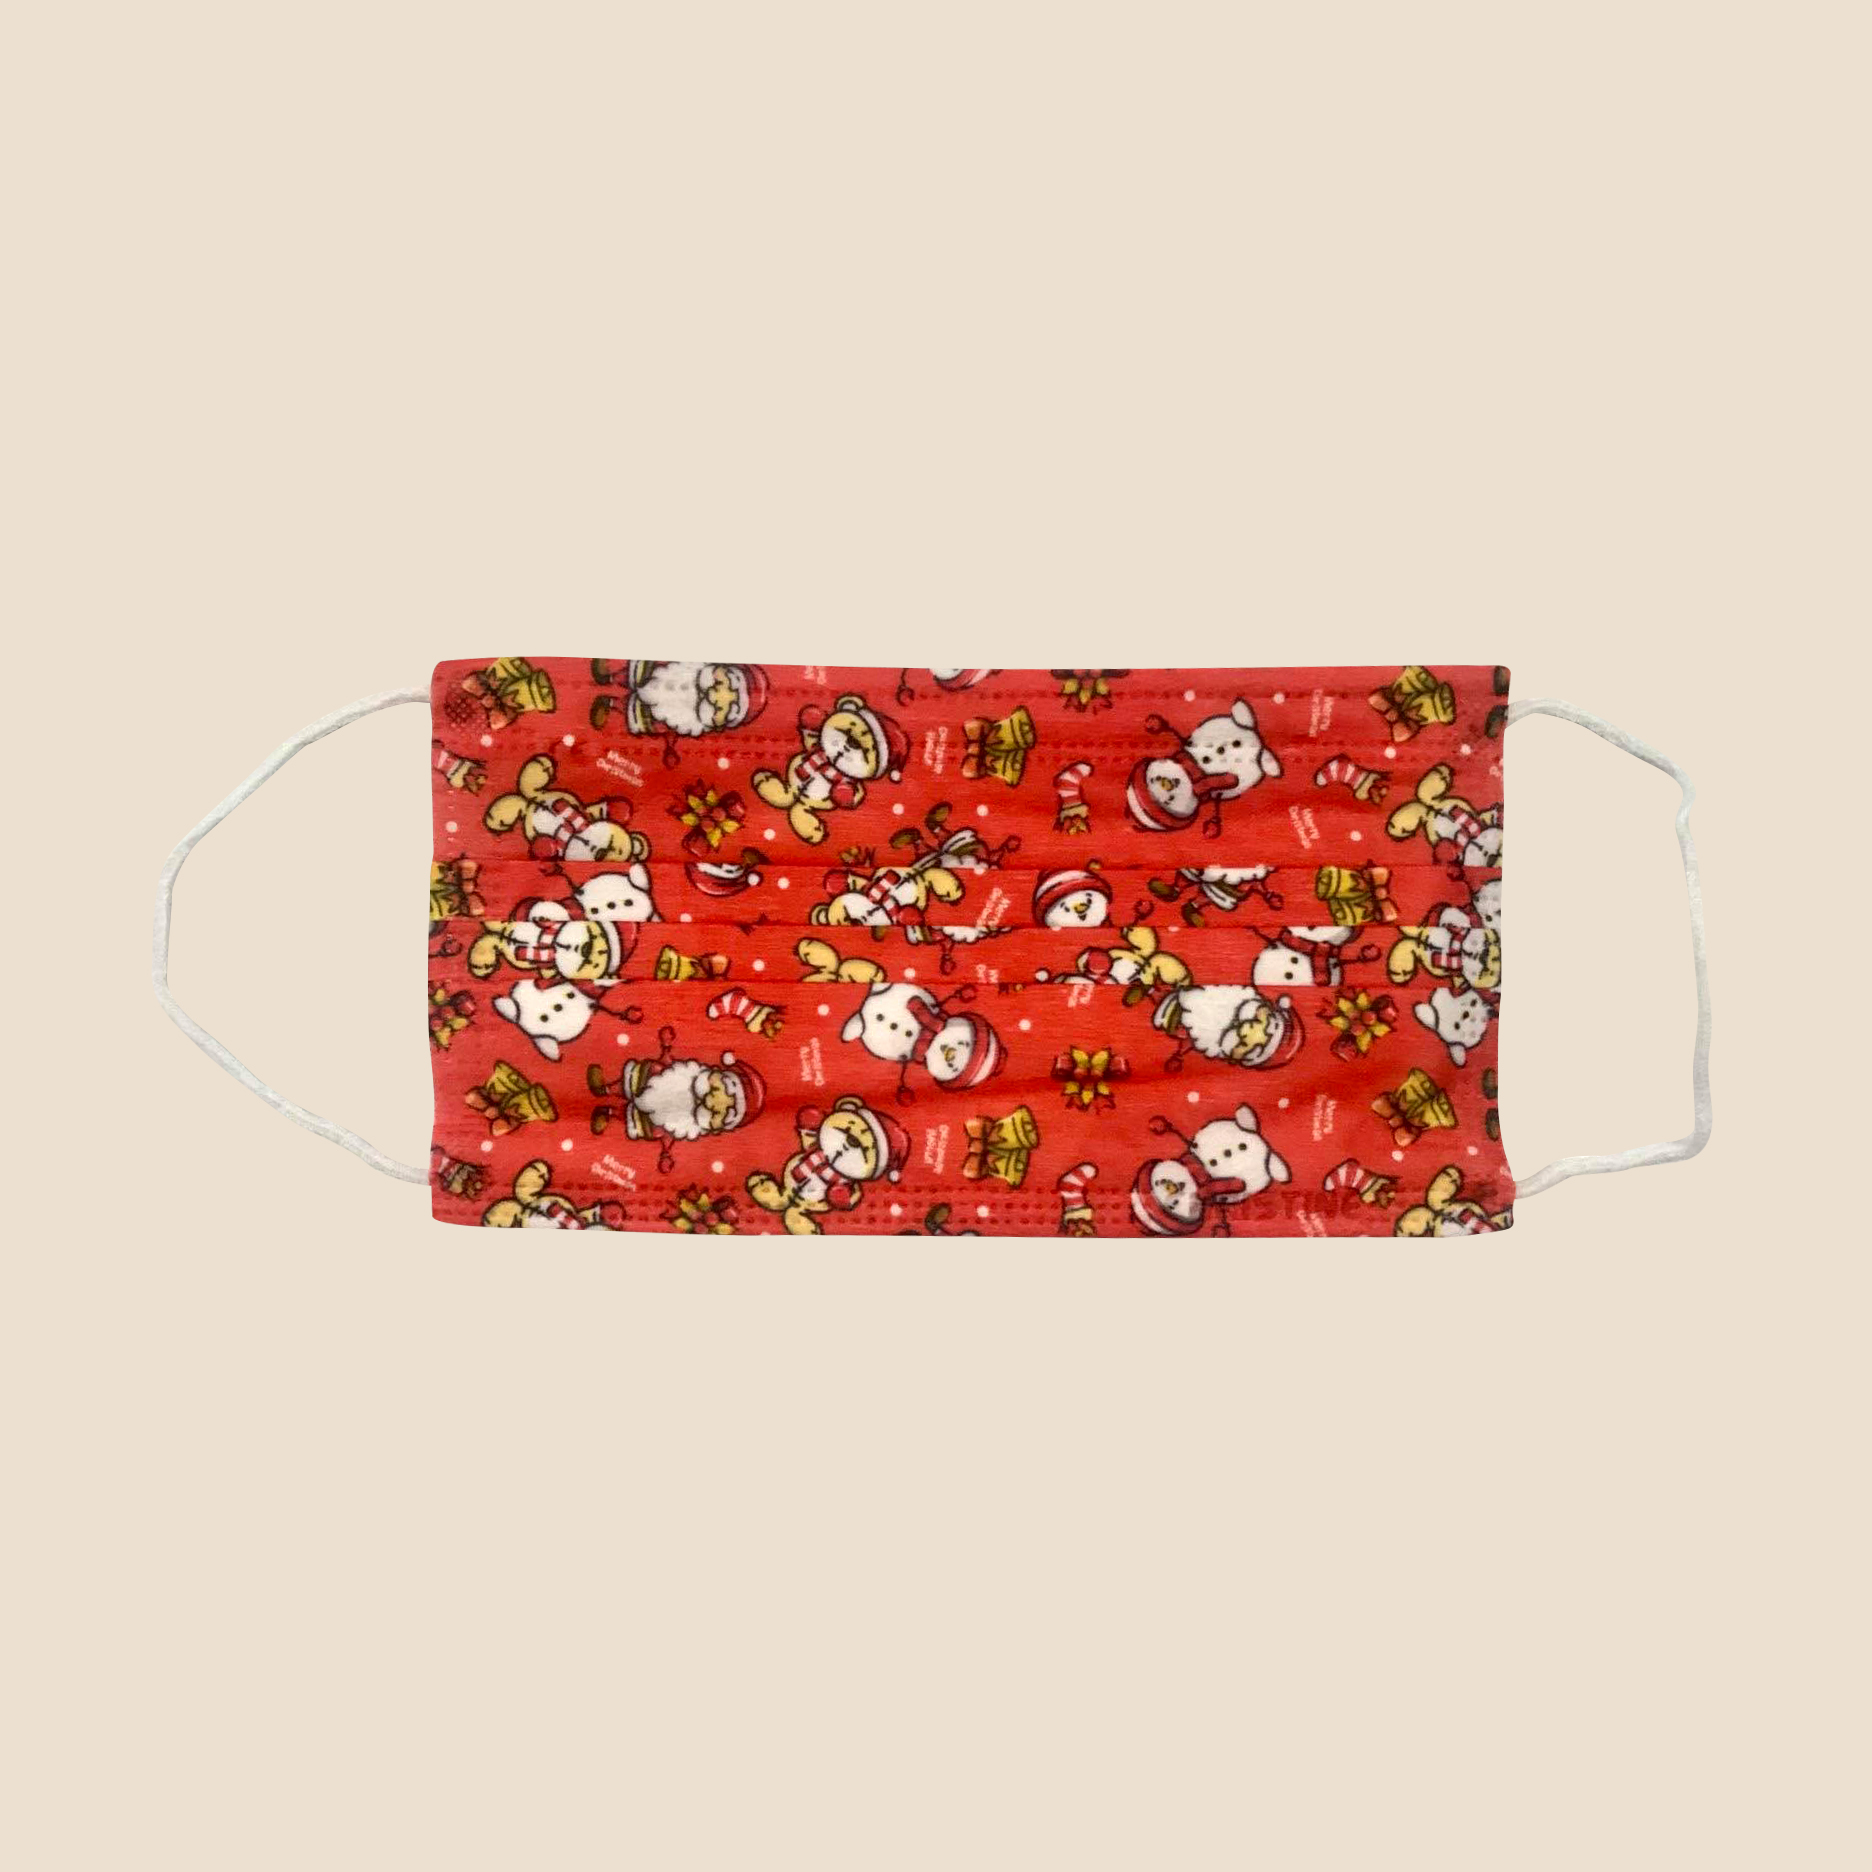 Surgical Face Mask for Holiday